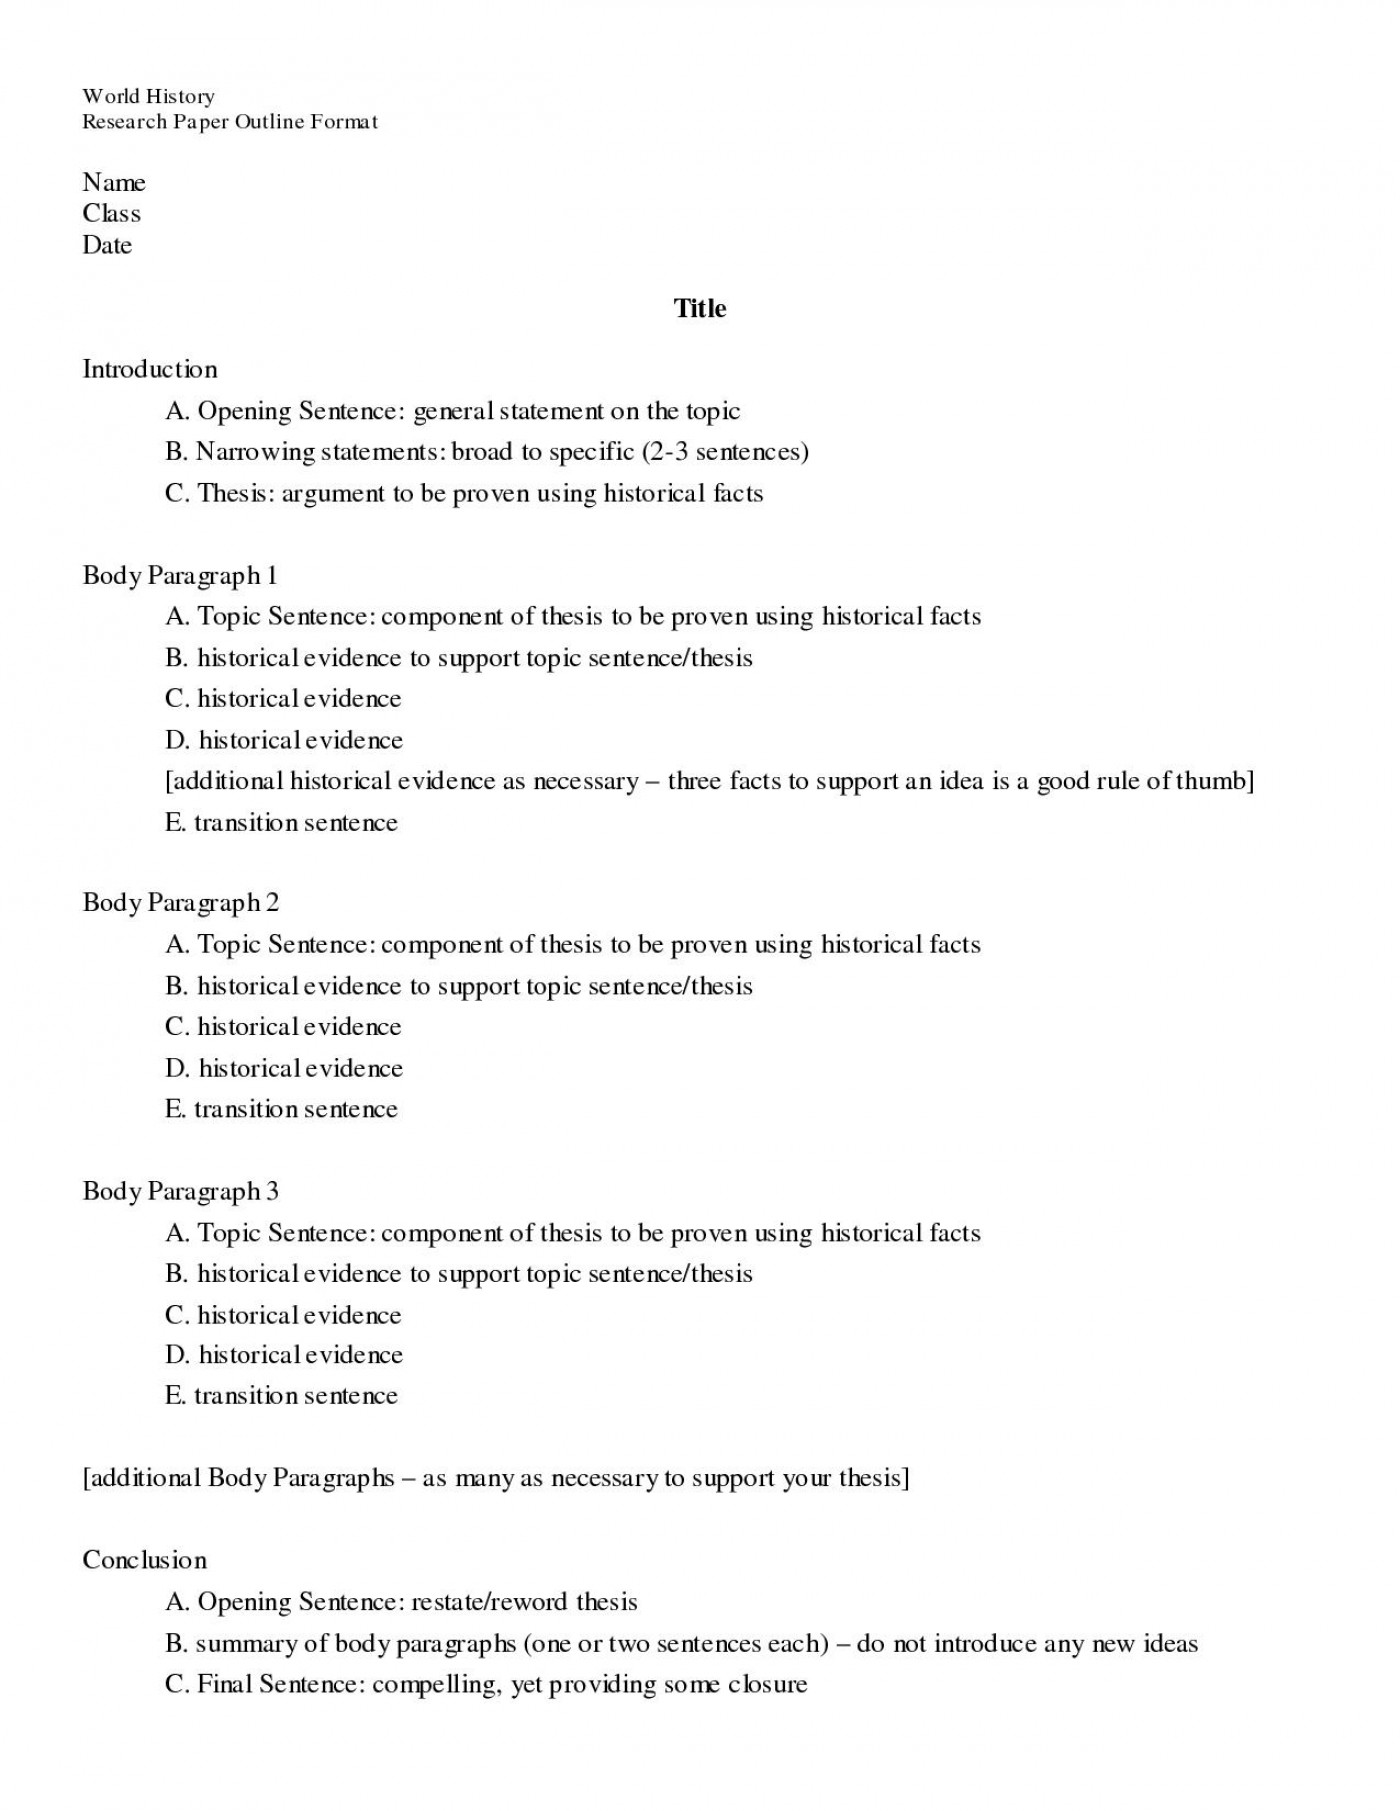 012 Outline Image1 Sample Outlines For Researchs Awful Research Papers Writing Example Examples Of Apa Paper 1400